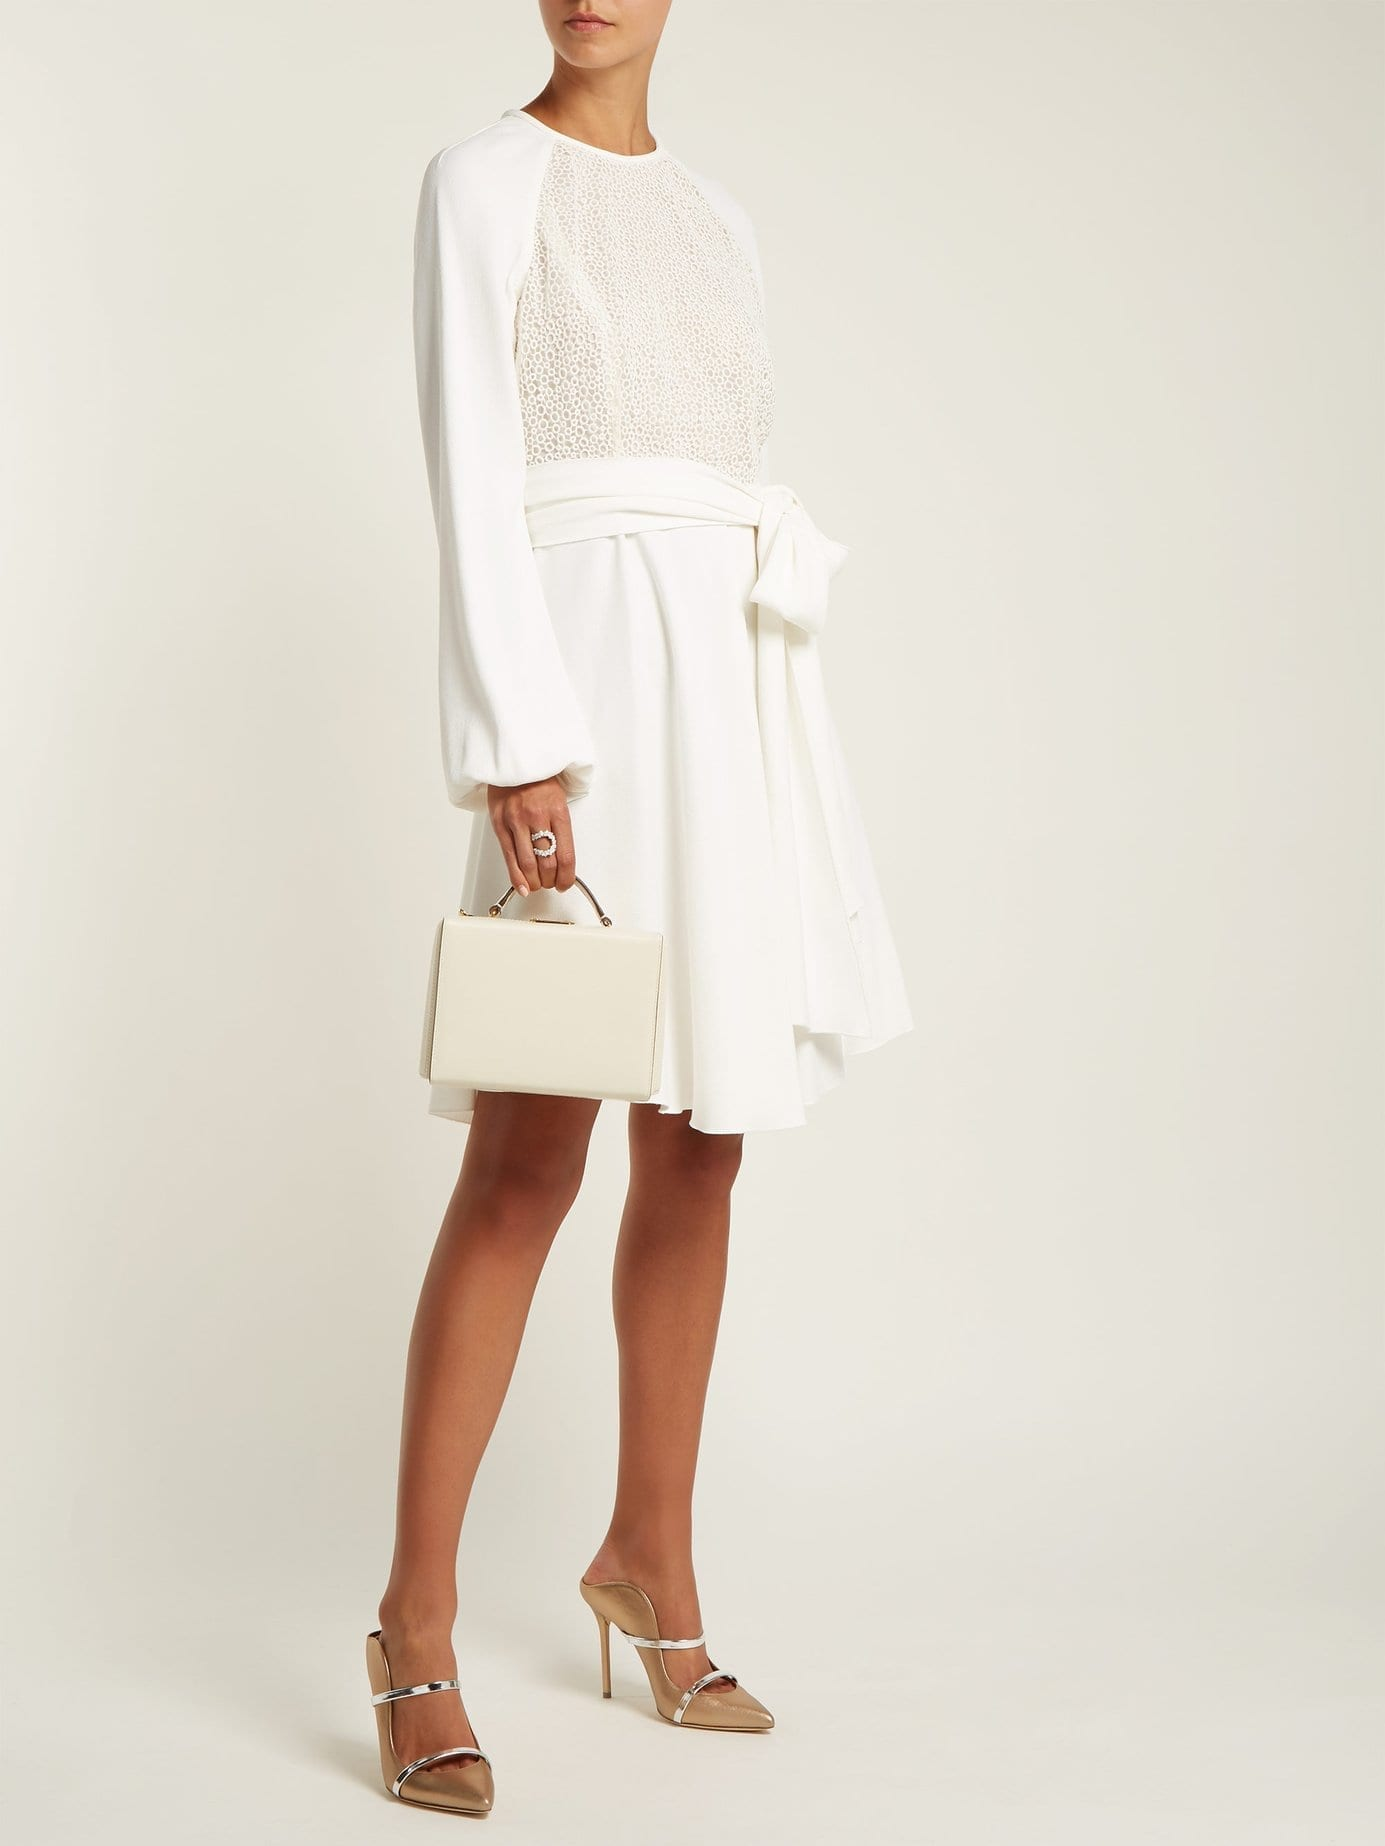 GIAMBATTISTA VALLI Pois Lace And Crepe Mini Ivory Dress